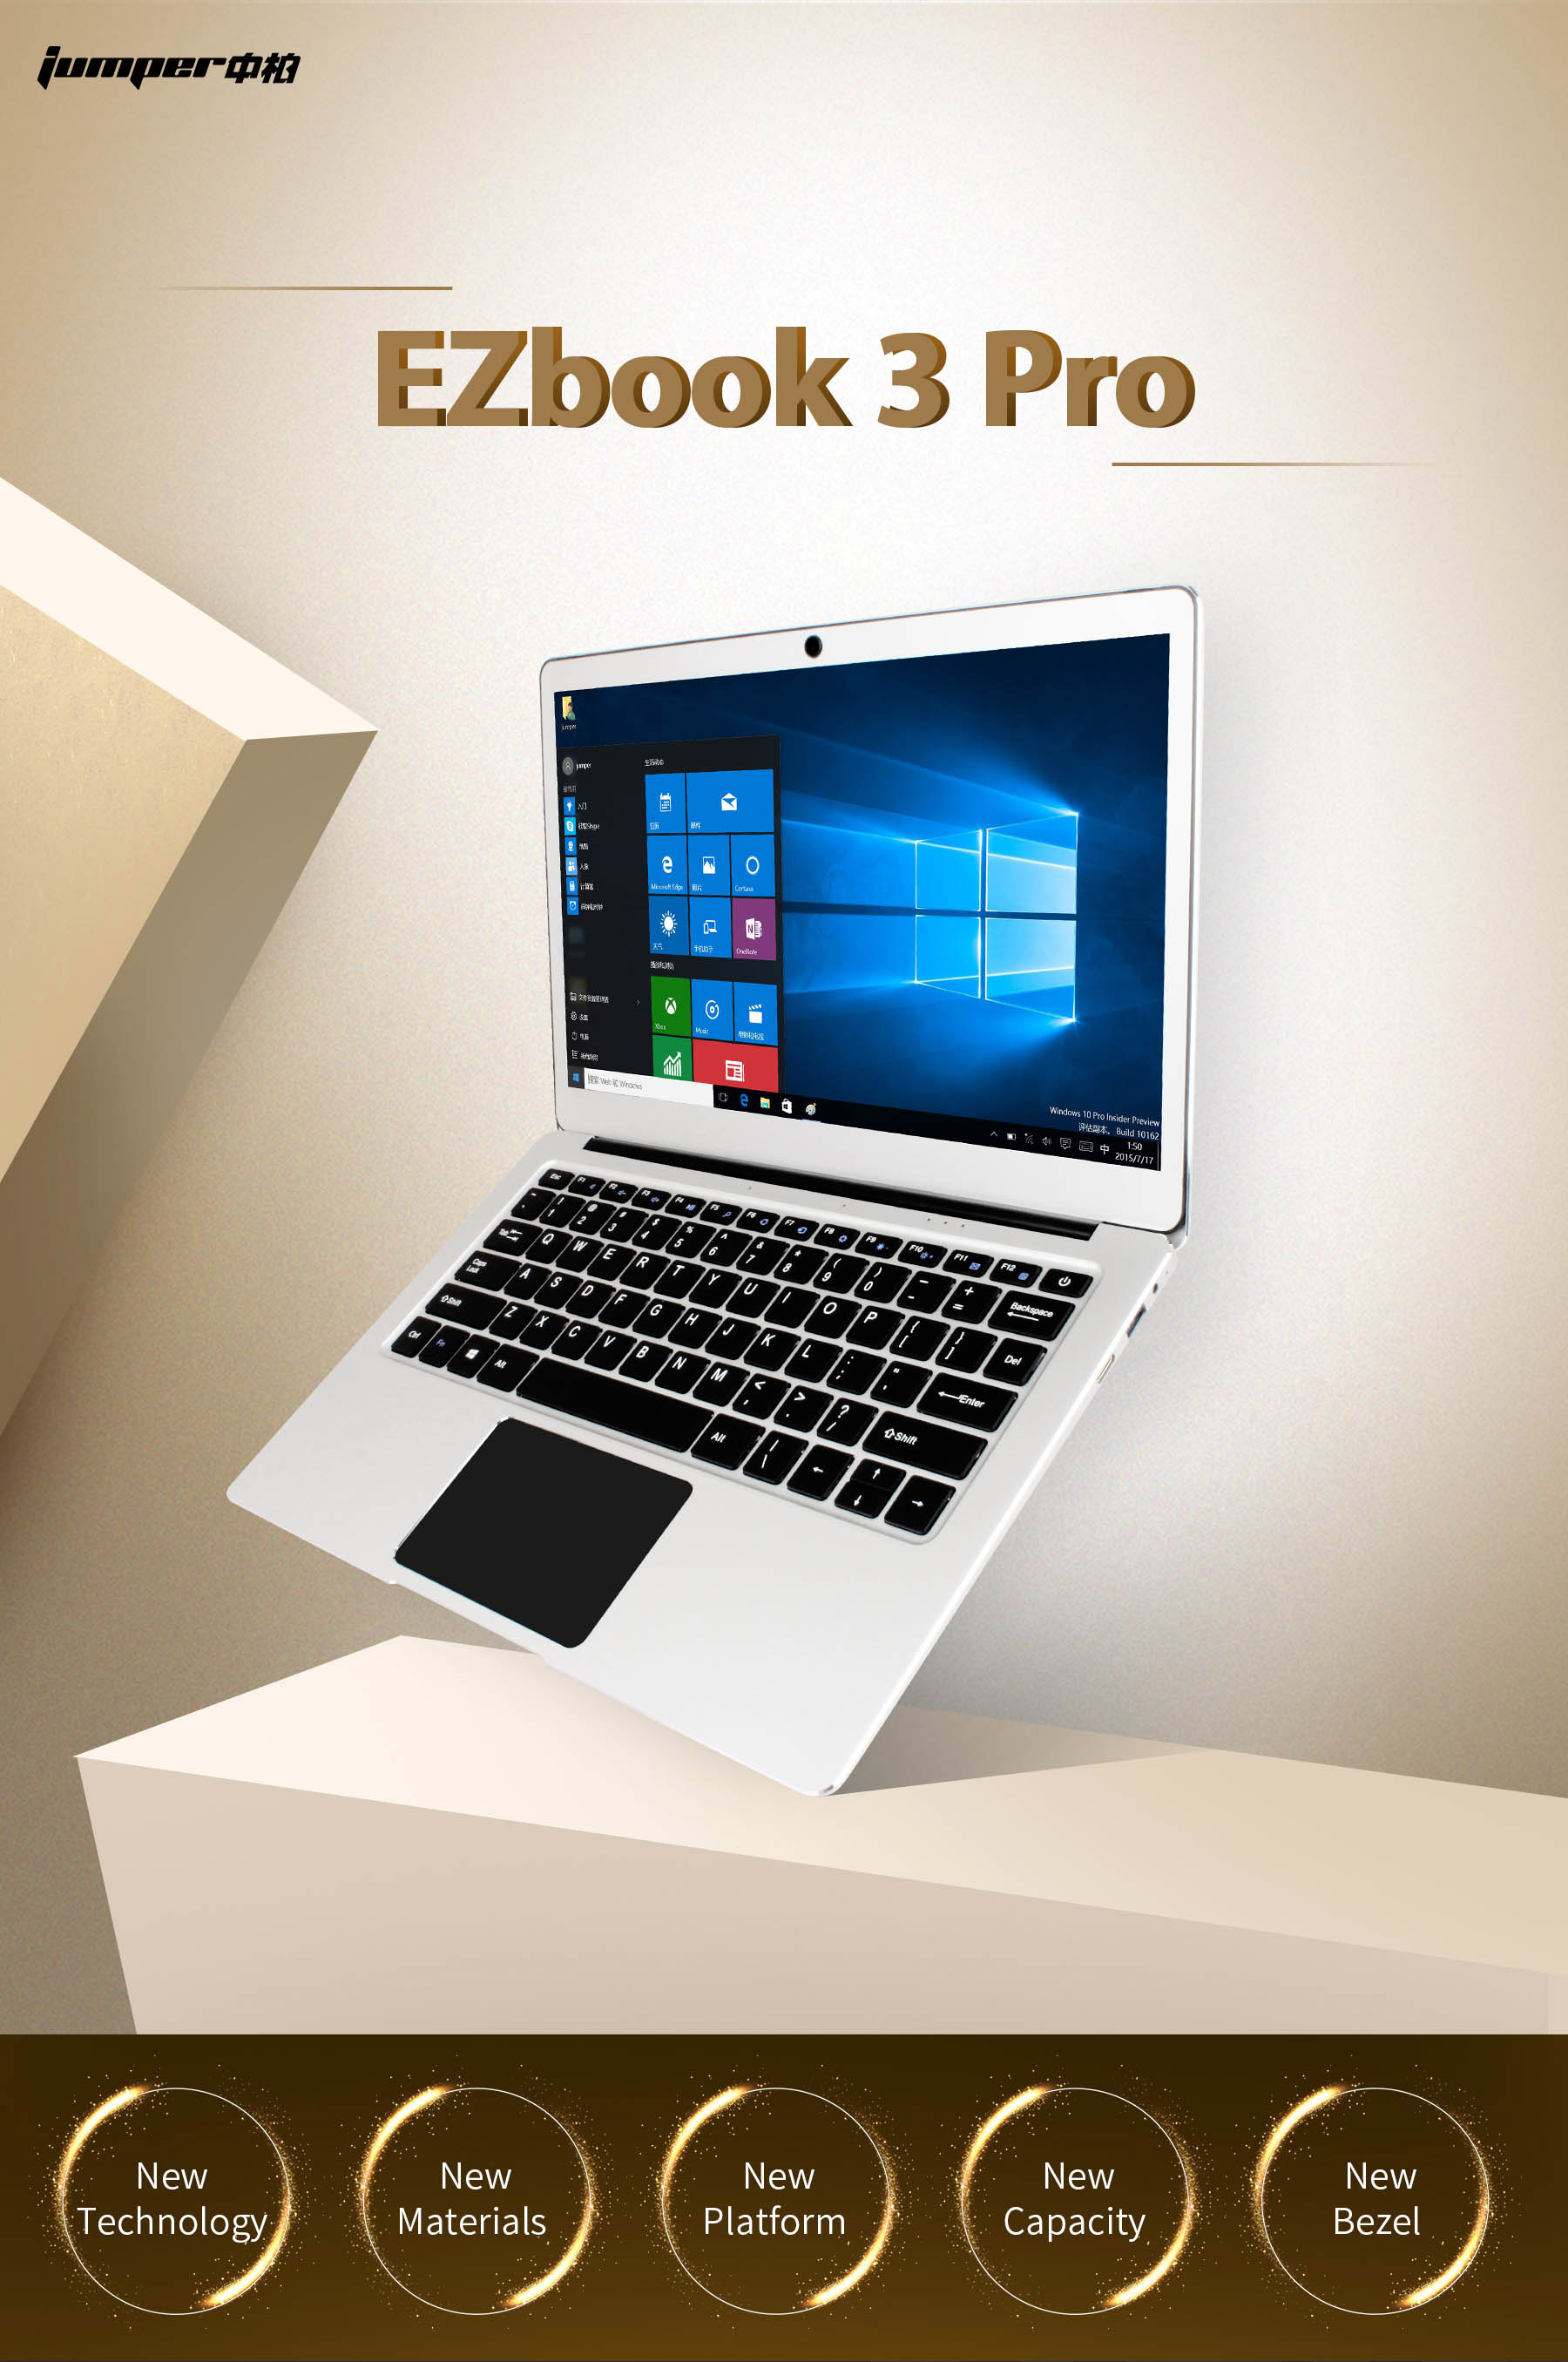 Jumper EZBOOK 3 PRO 13.3 Inch Notebook Windows 10 Intel Apollo Lake N3450 Quad Core 6GB RAM 64G eMMC / 128GB